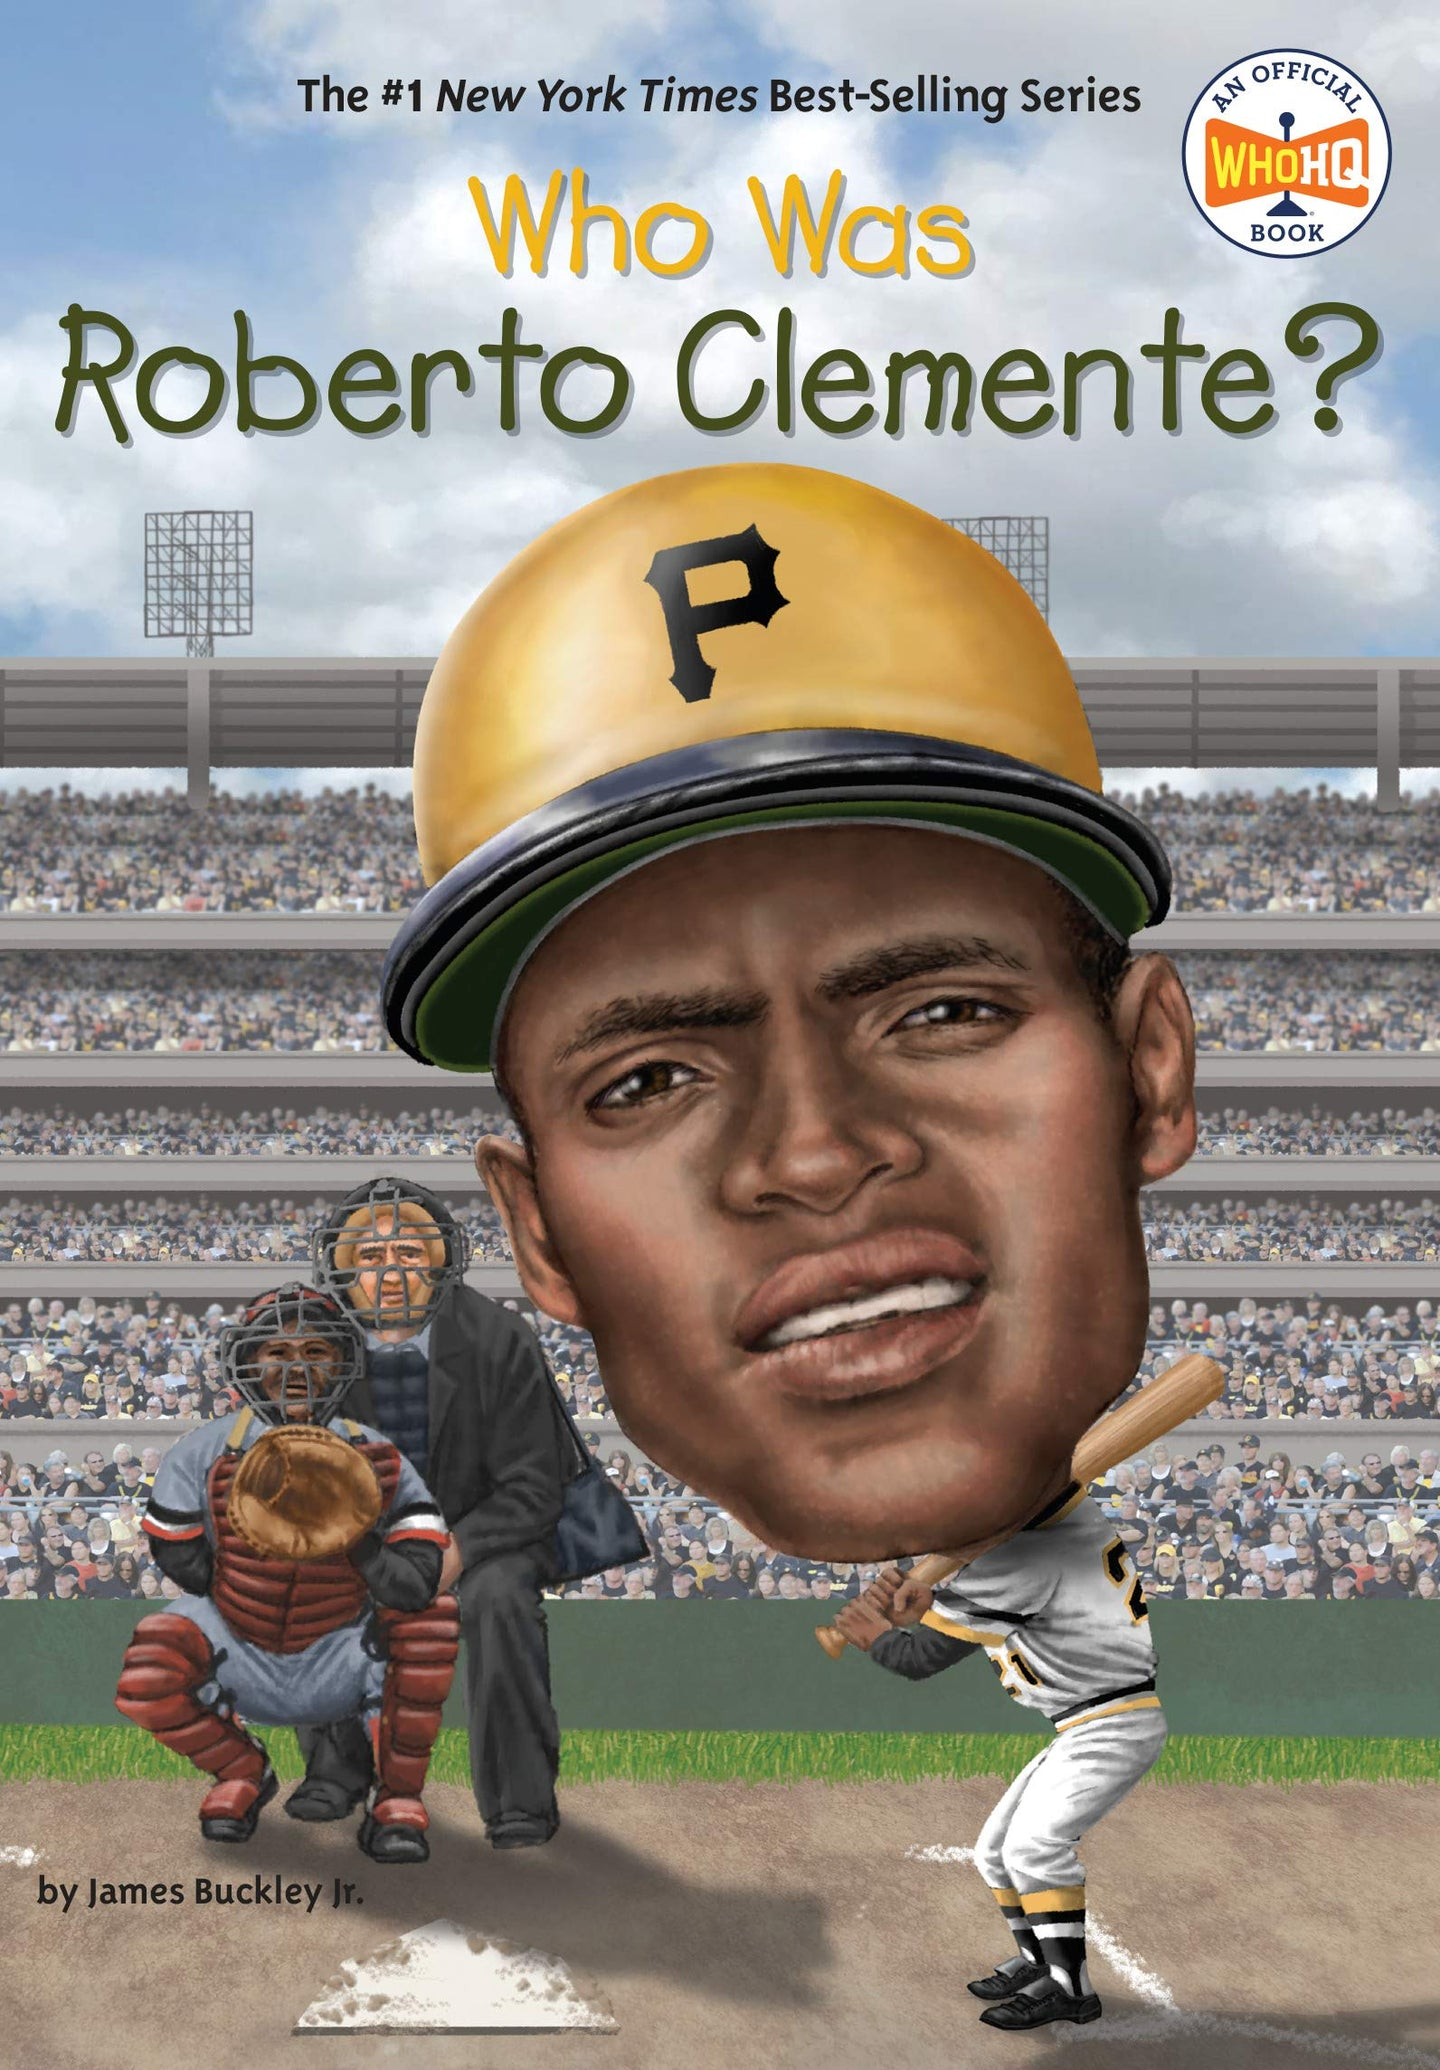 Who Was Roberto Clemente? By James Buckley Jr. - Little Green Schoolhouse Books